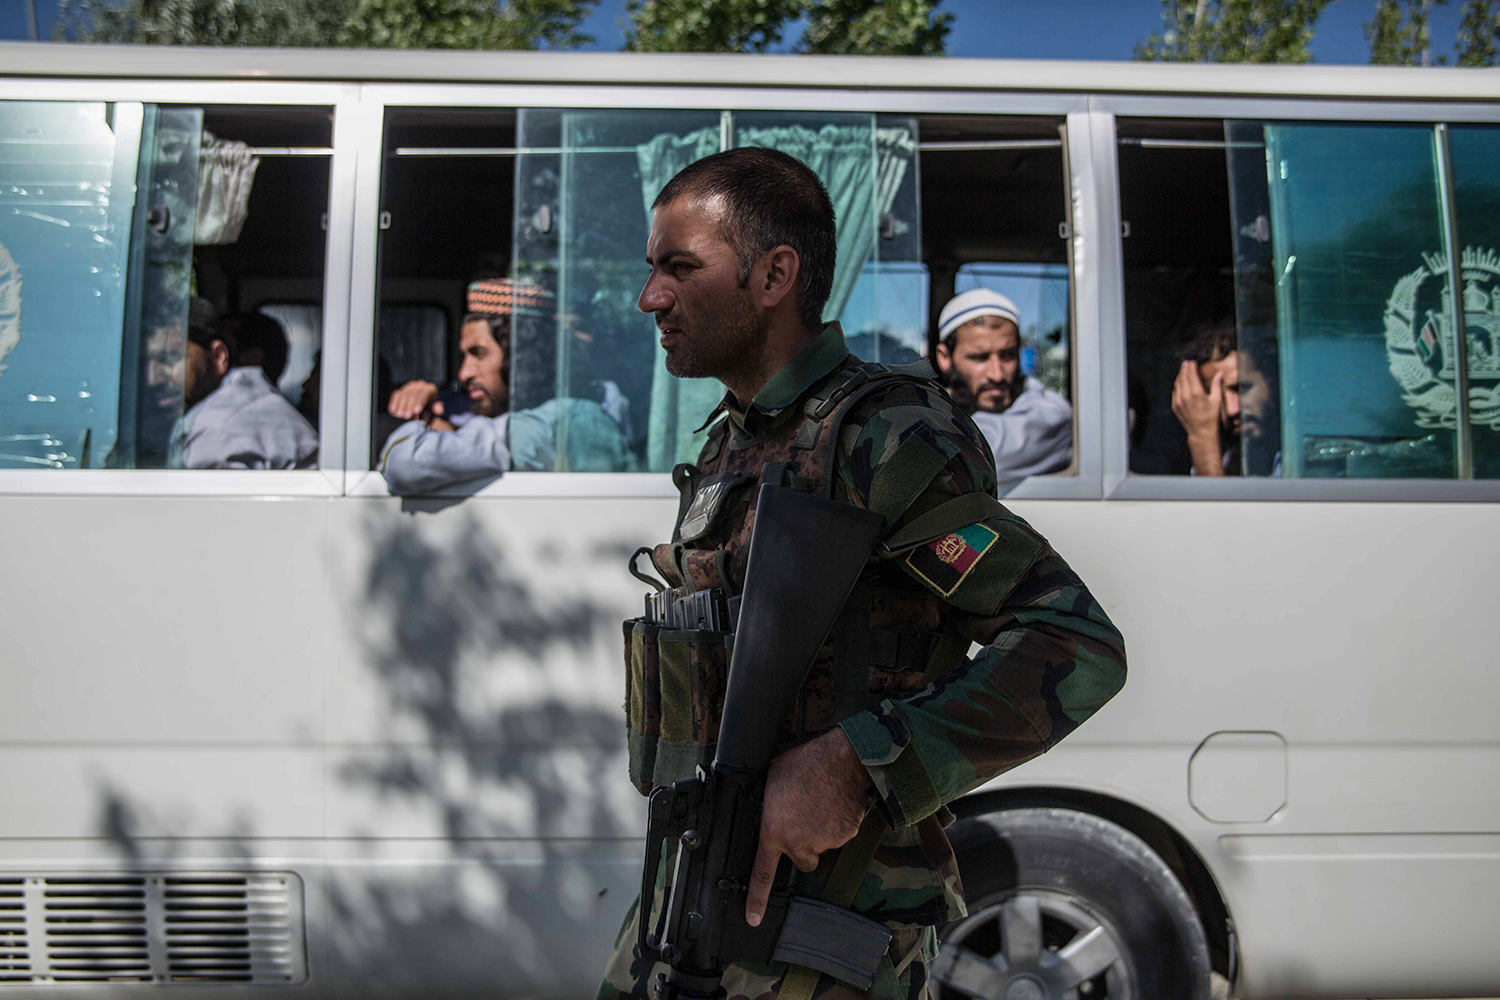 Taliban, Afghan Government Hint at Progress as Cease-Fire Expires